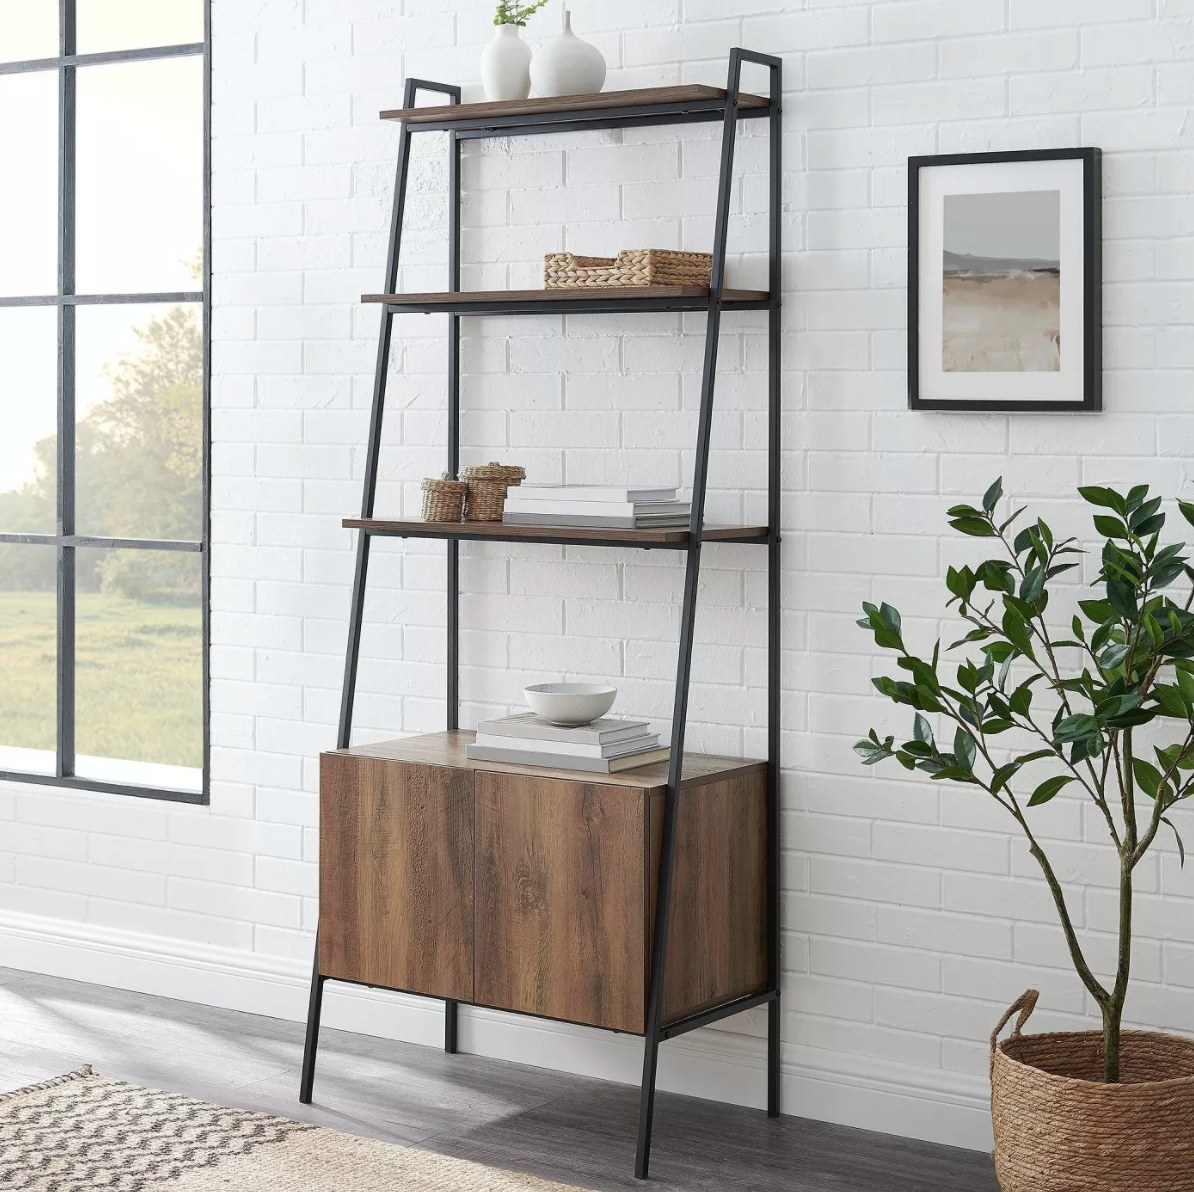 The ladder bookcase in brown wood with metal legs